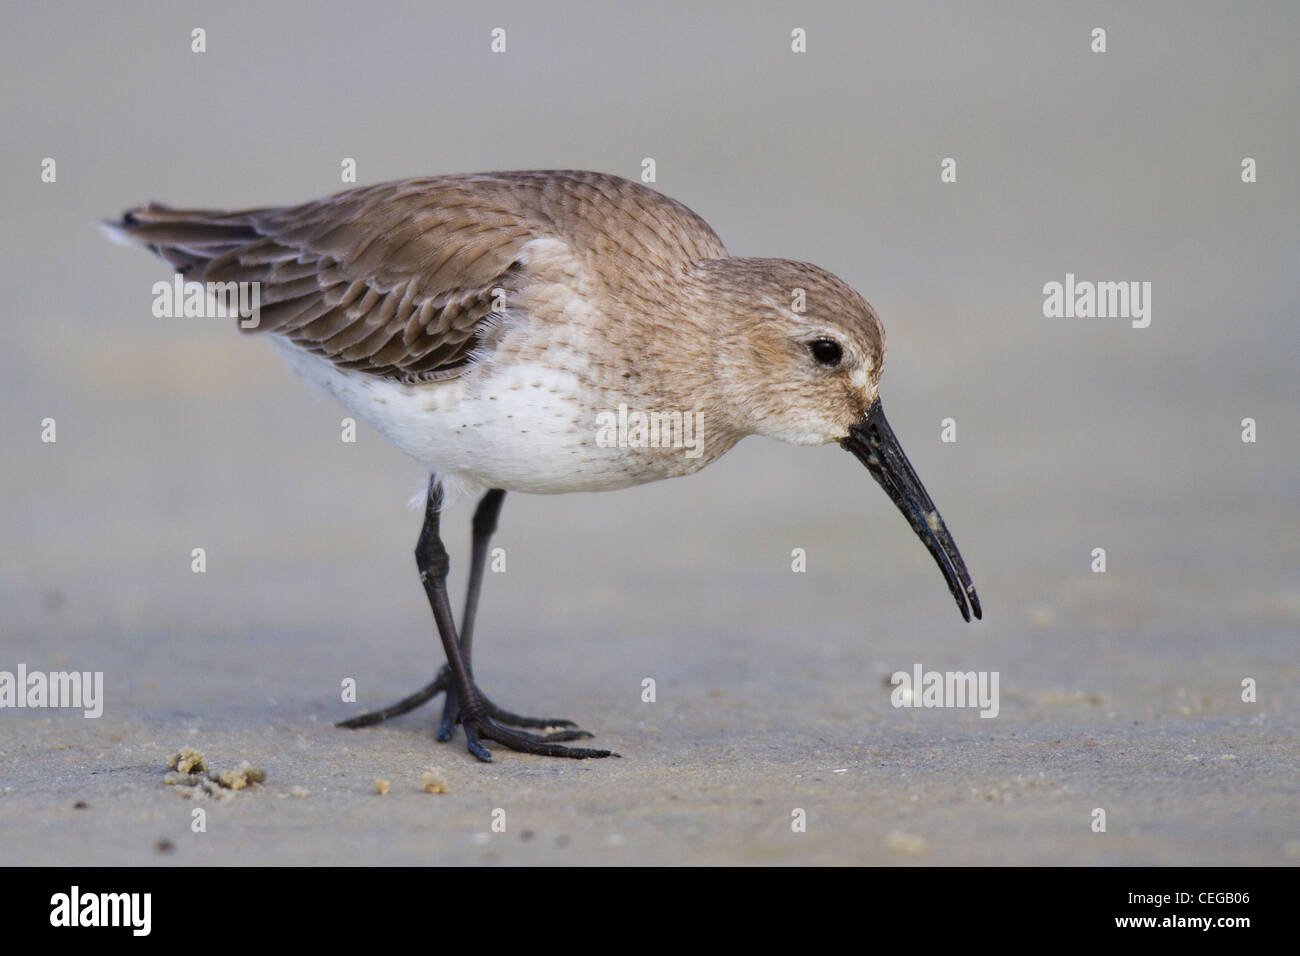 Dunlin (Calidris alpina) in non-breeding plumage walking on a beach - Stock Image